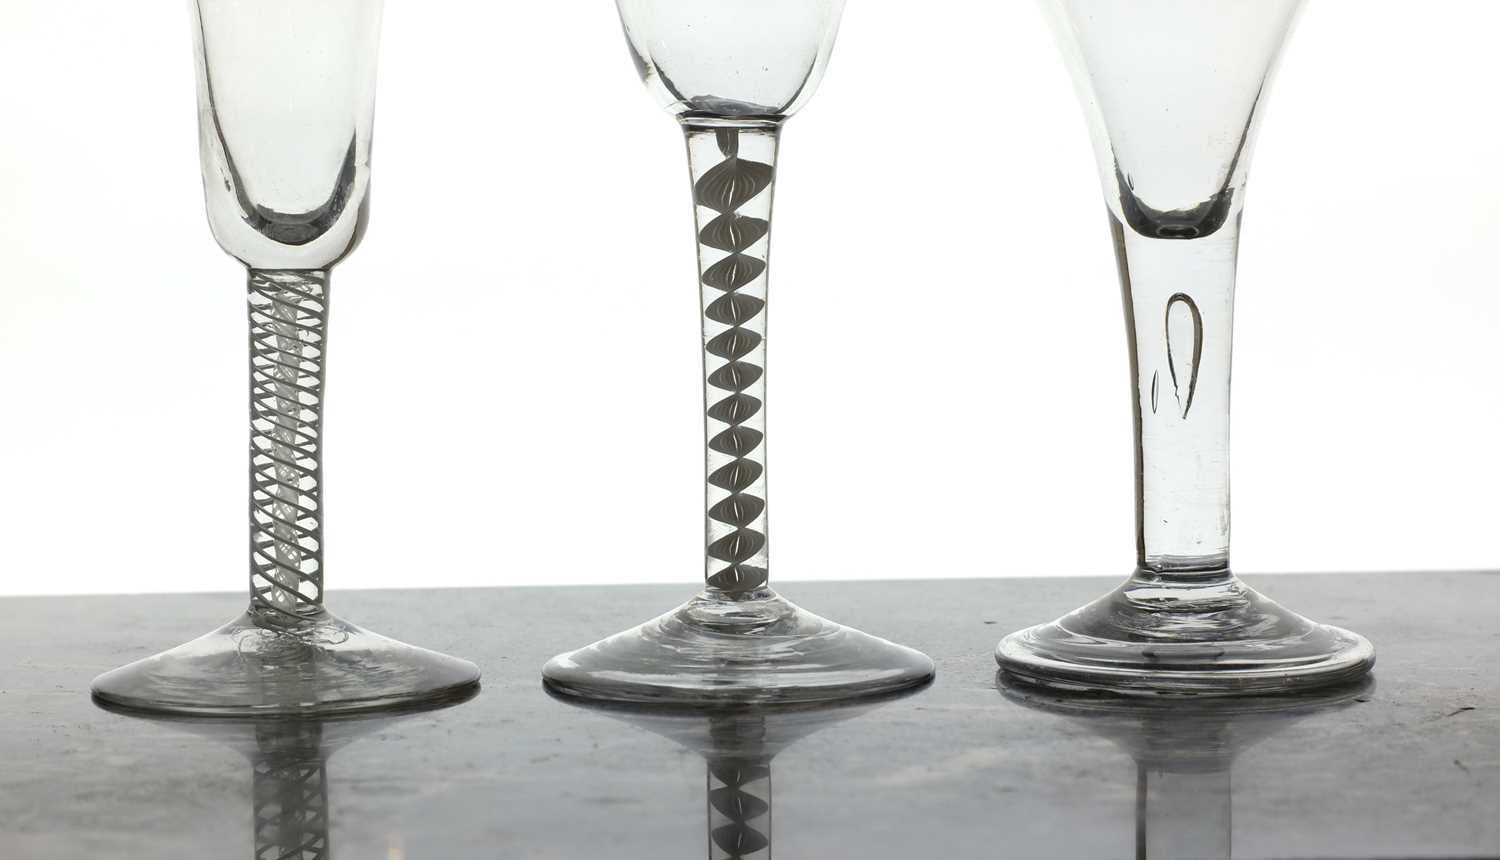 An 18th century glass, - Image 2 of 3